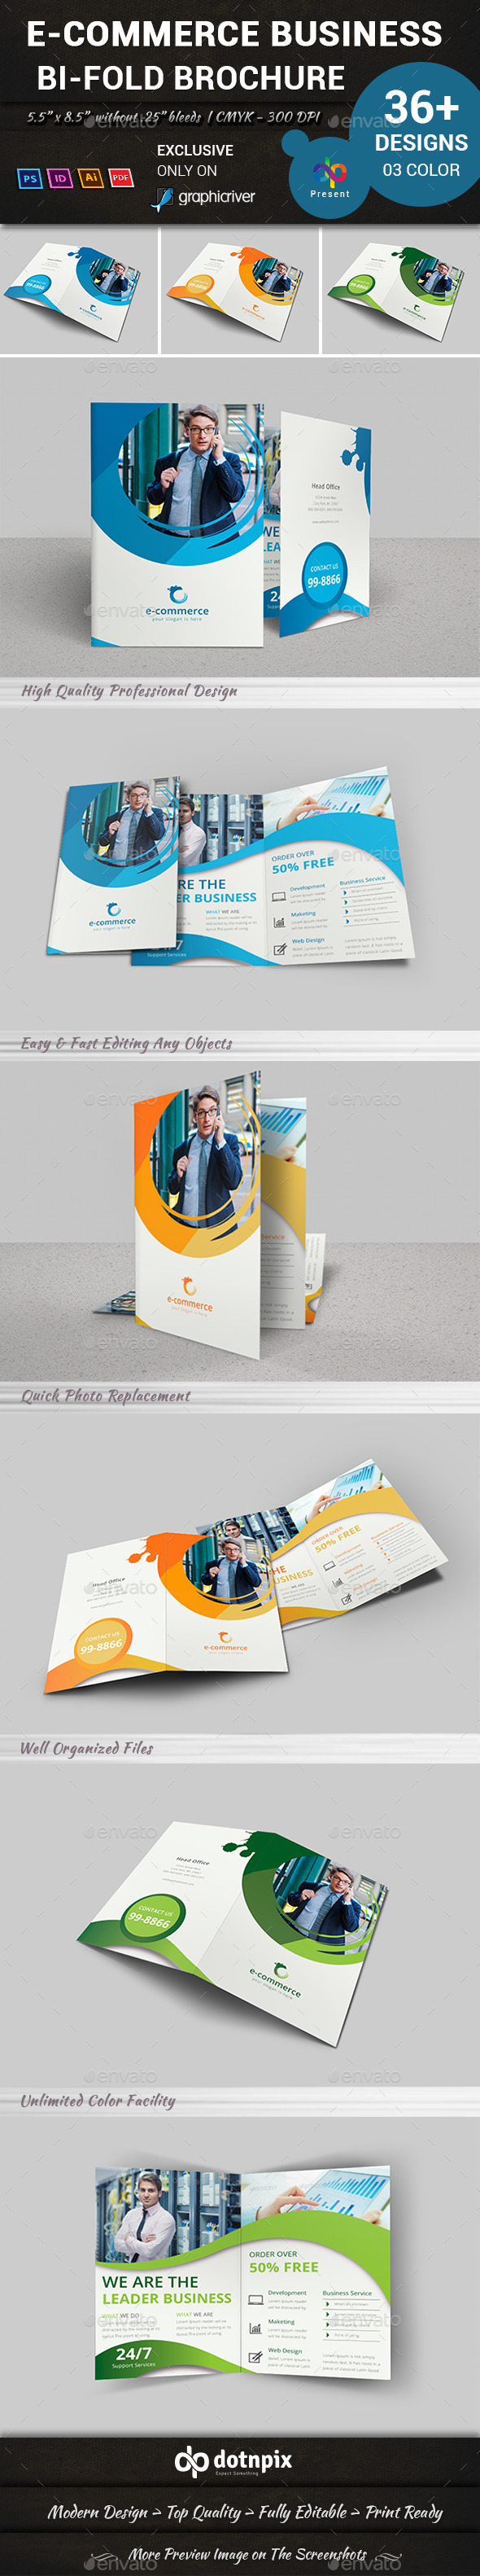 GraphicRiver E-Commerce Business Bi-Fold Brochure 10803868